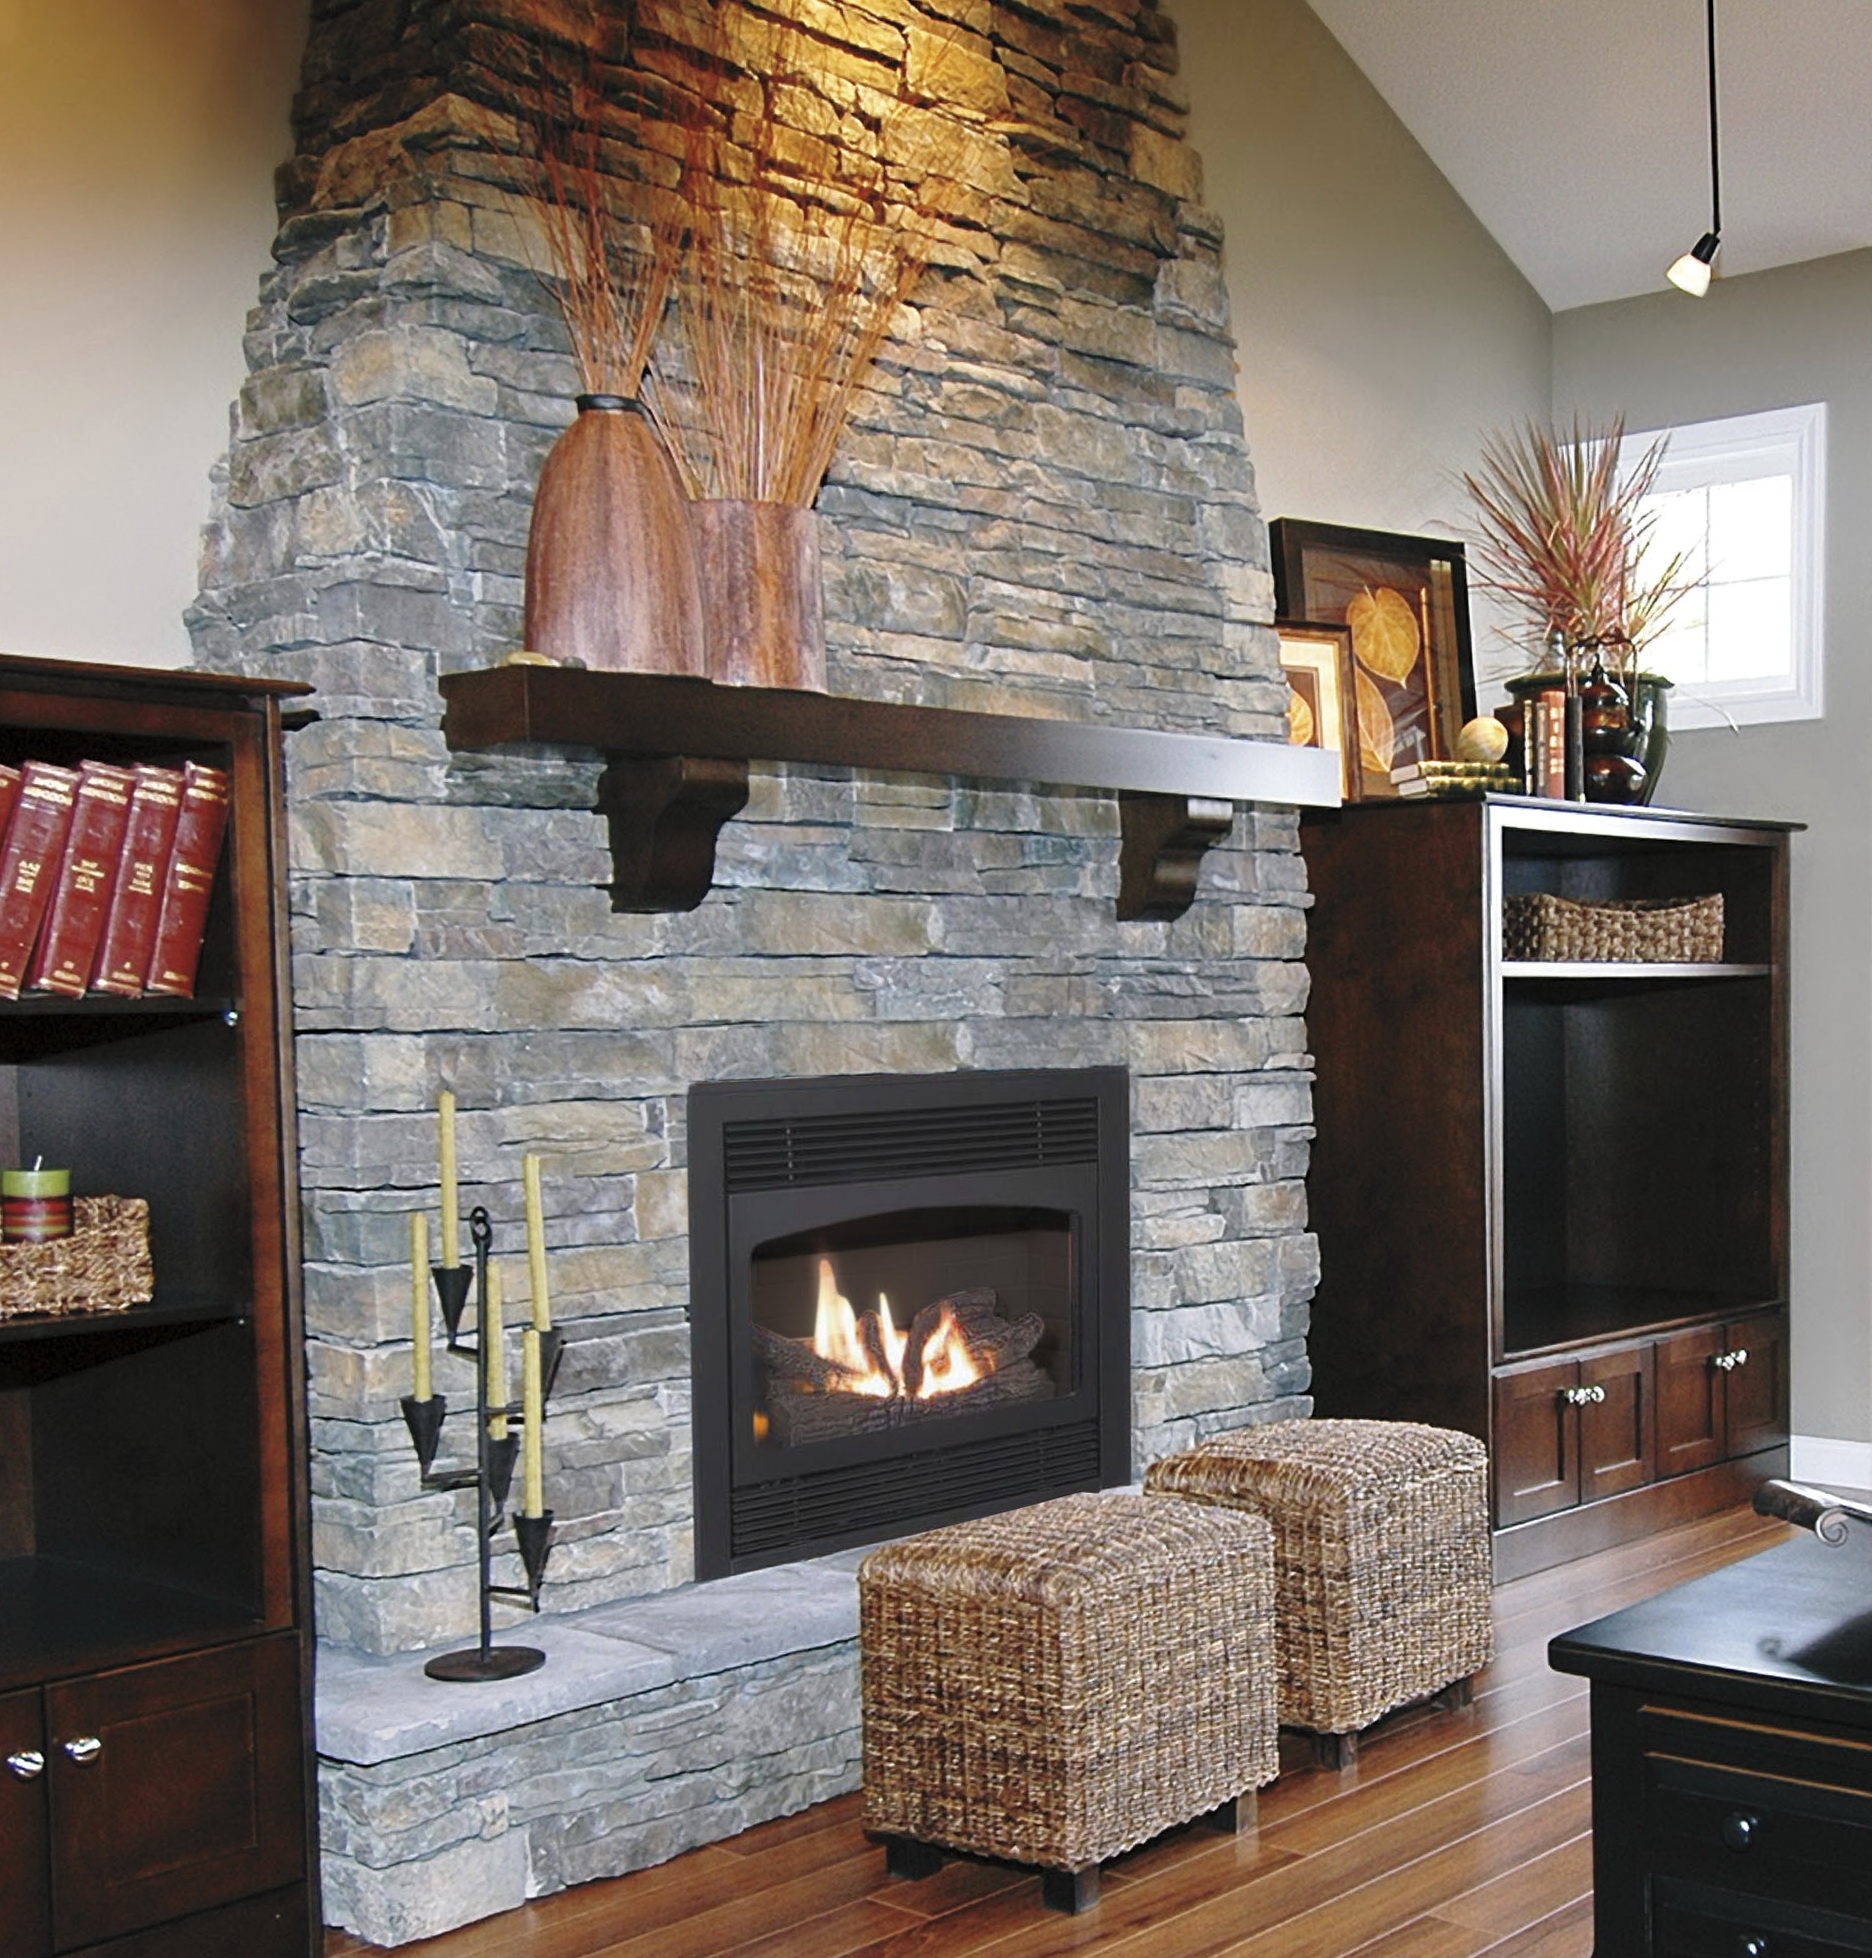 fireplace on remote watch skytech off control a youtube